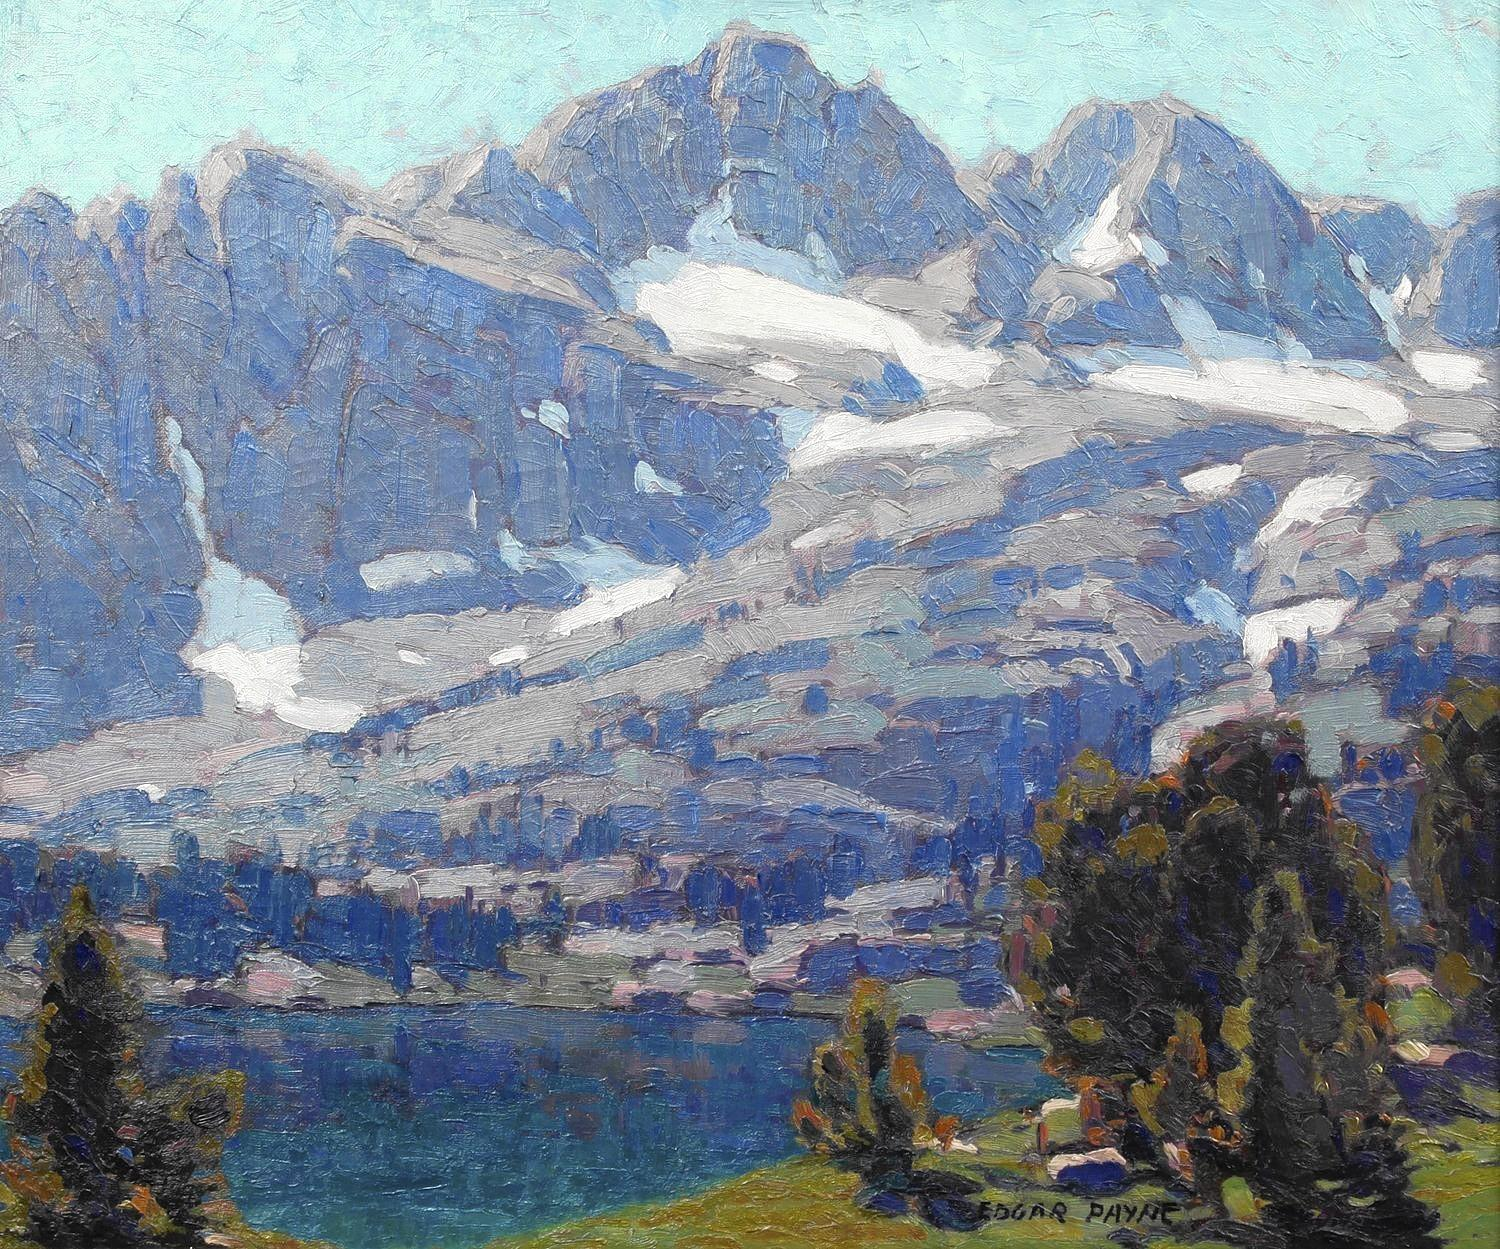 """Sierra Lake, Fifth Lake,"" by Edgar Payne, is one of the paintings on display at DeRus Fine Arts in Lagna Beach as part of the ""Highlights from Early California Impressionists"" exhibit."